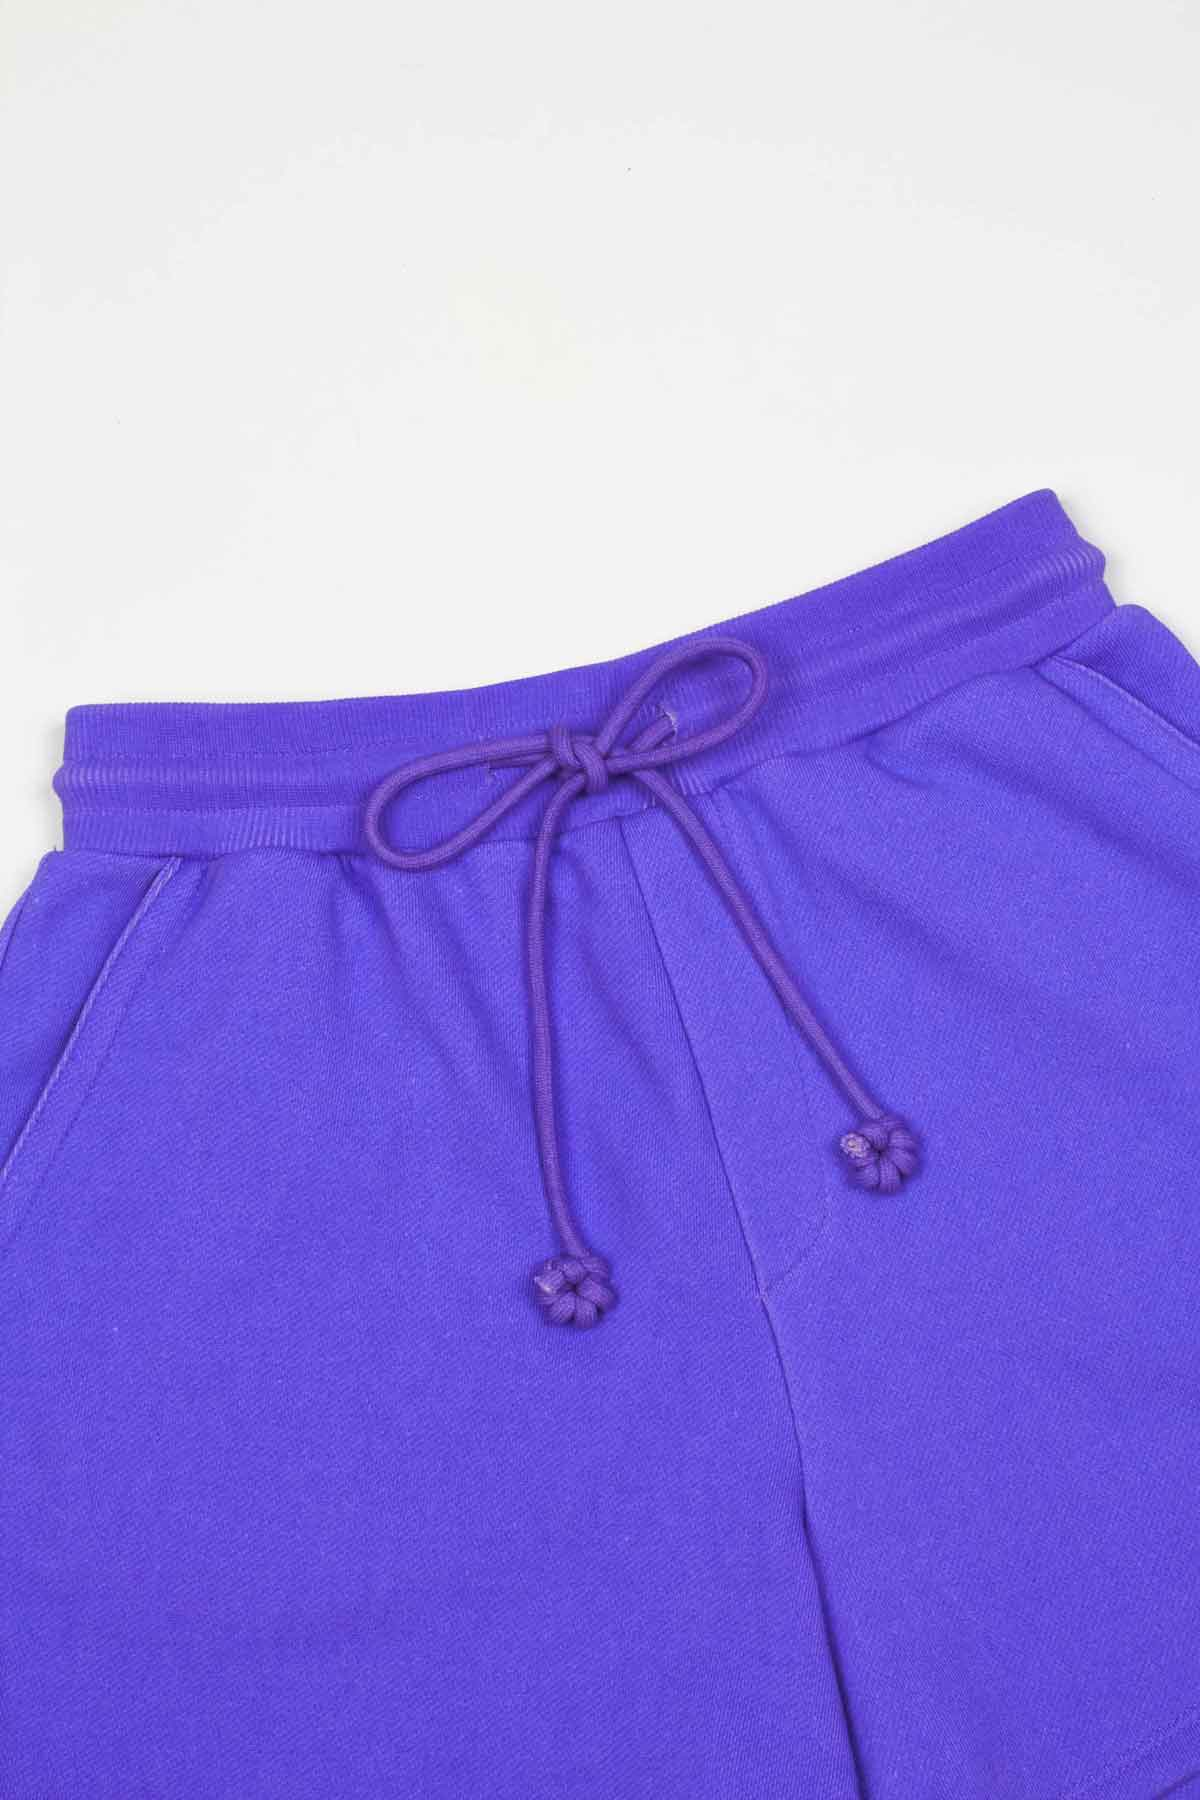 Photo of Violet Kush Women's Sweat Shorts, number 6